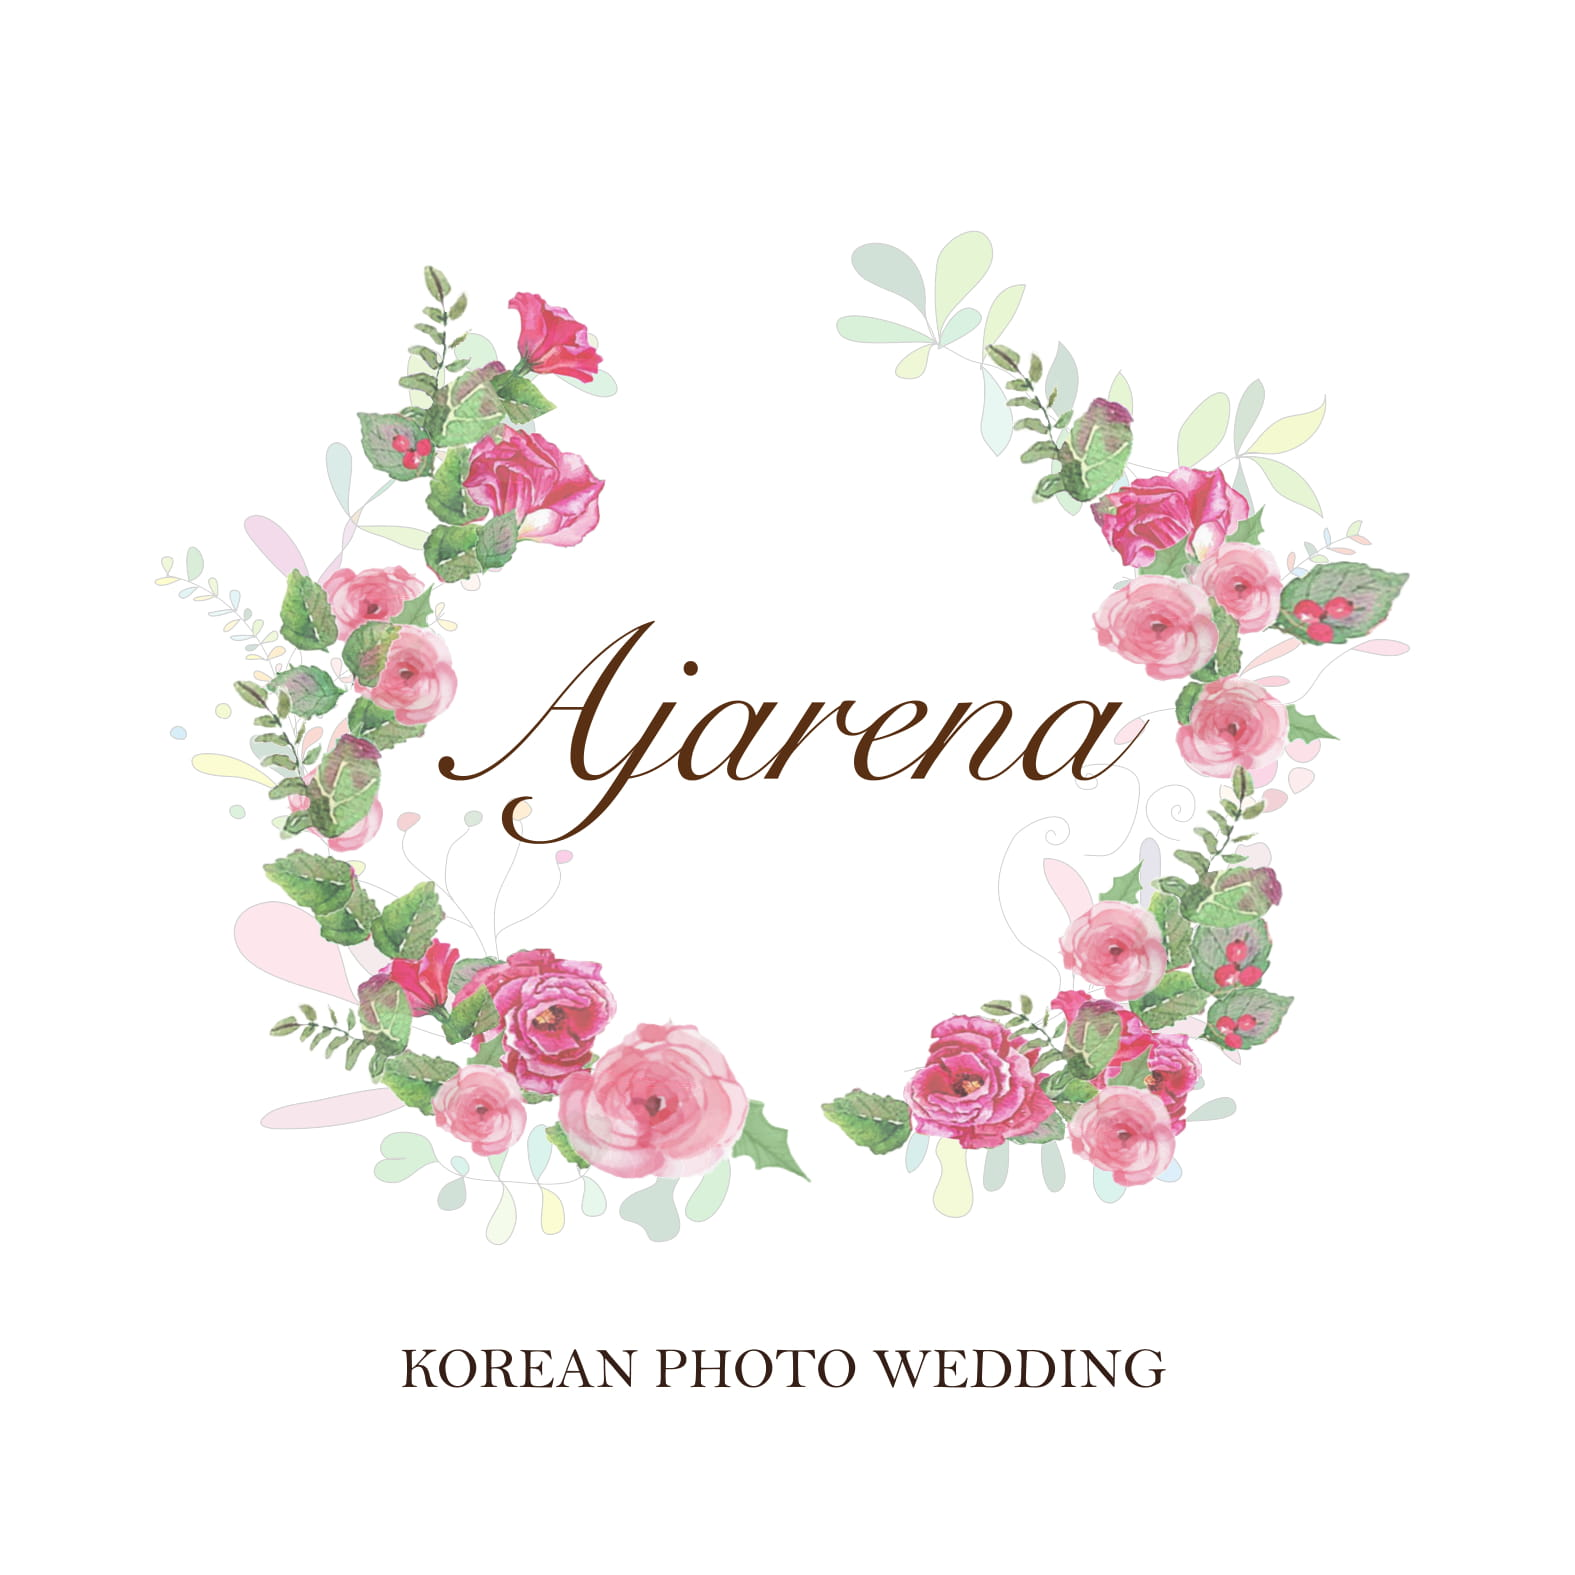 logo loading of ajarena wedding